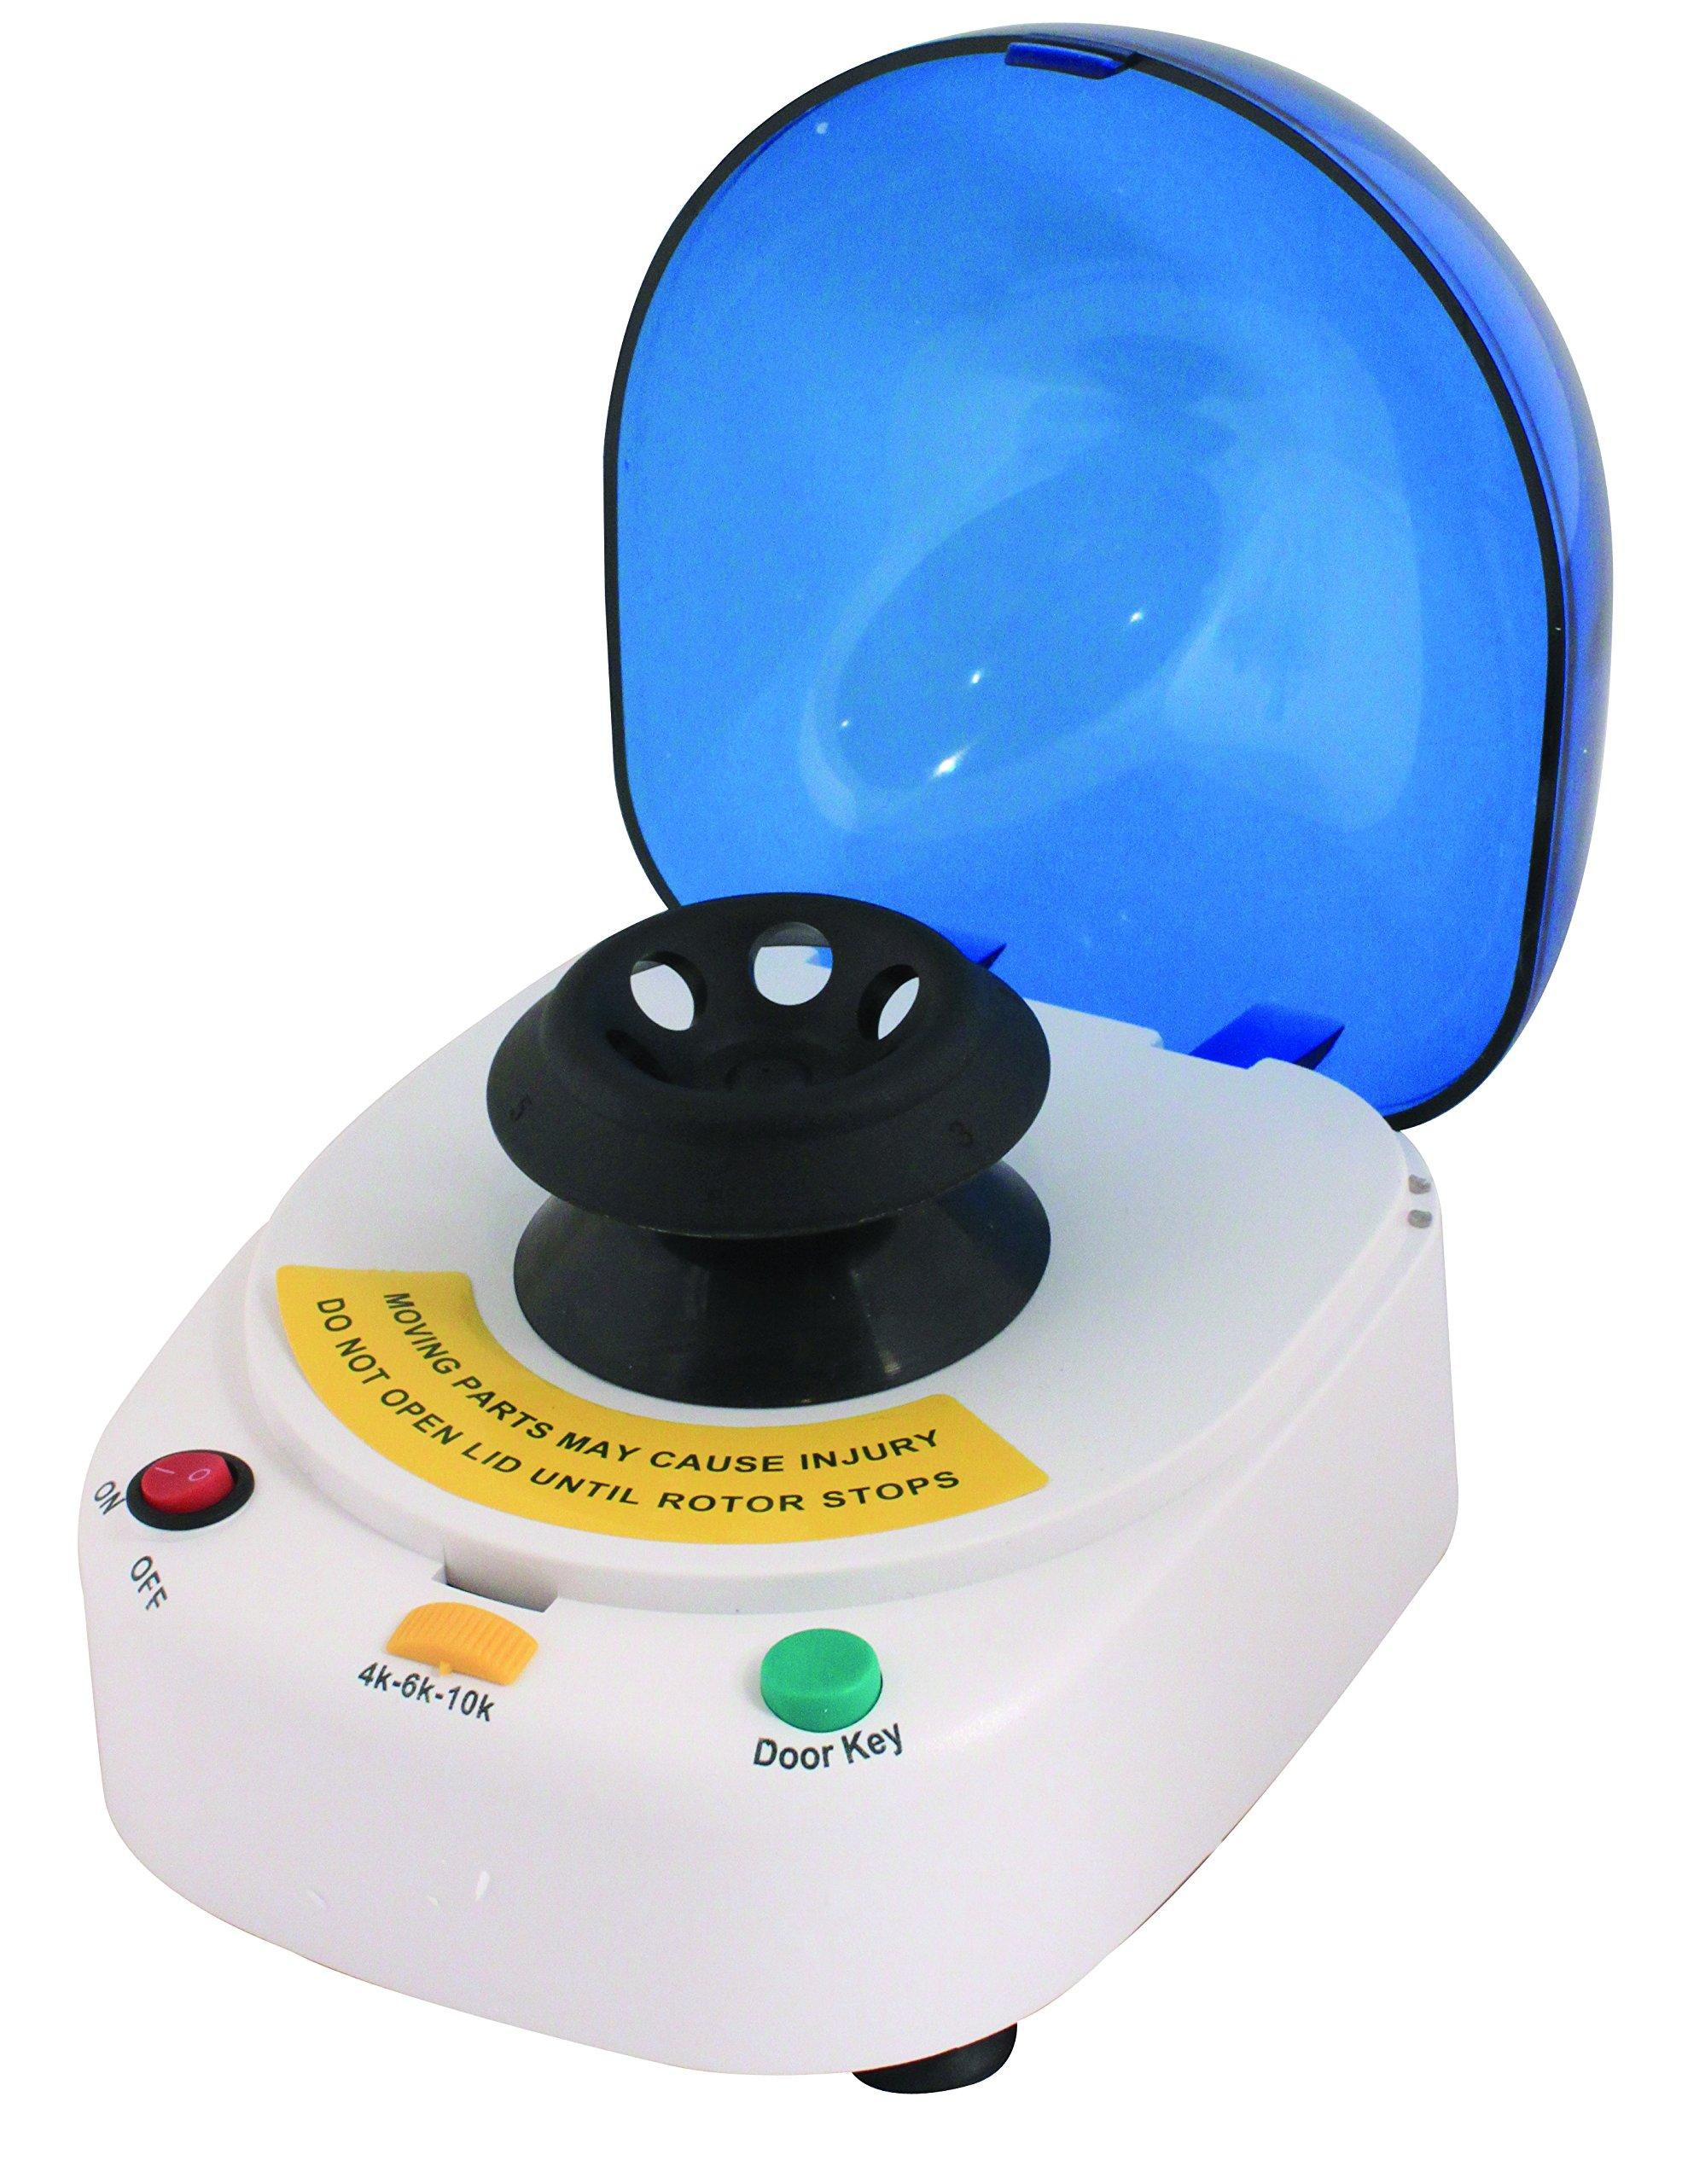 Bio Lion Centrifuge, XC-4610K, Mini desk-top centrifuge, with two separate rotor options, provides speeds of 4,000 rpm with 900g maximum RCF, 6000 rpm with 2,000 g maximum RCF and 10,000 rpm with 5,000 g maximum RCF